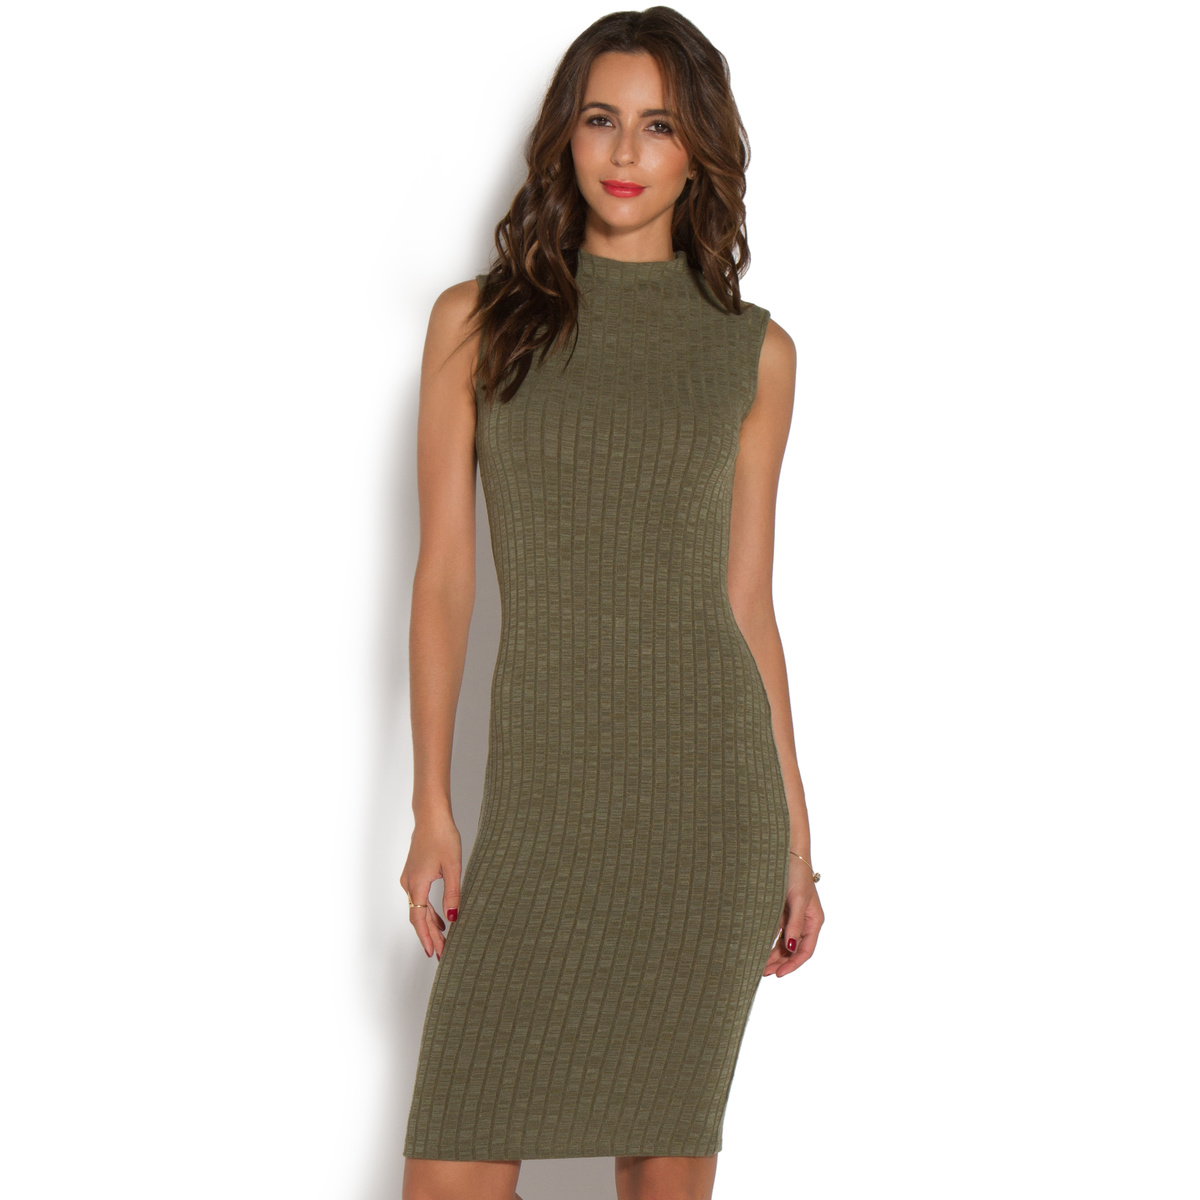 """""""""""ShoeDazzle Dresses Ribbed Mock Neck Dress Womens Green Size XL"""""""""""" DY1616870-3850-44050"""